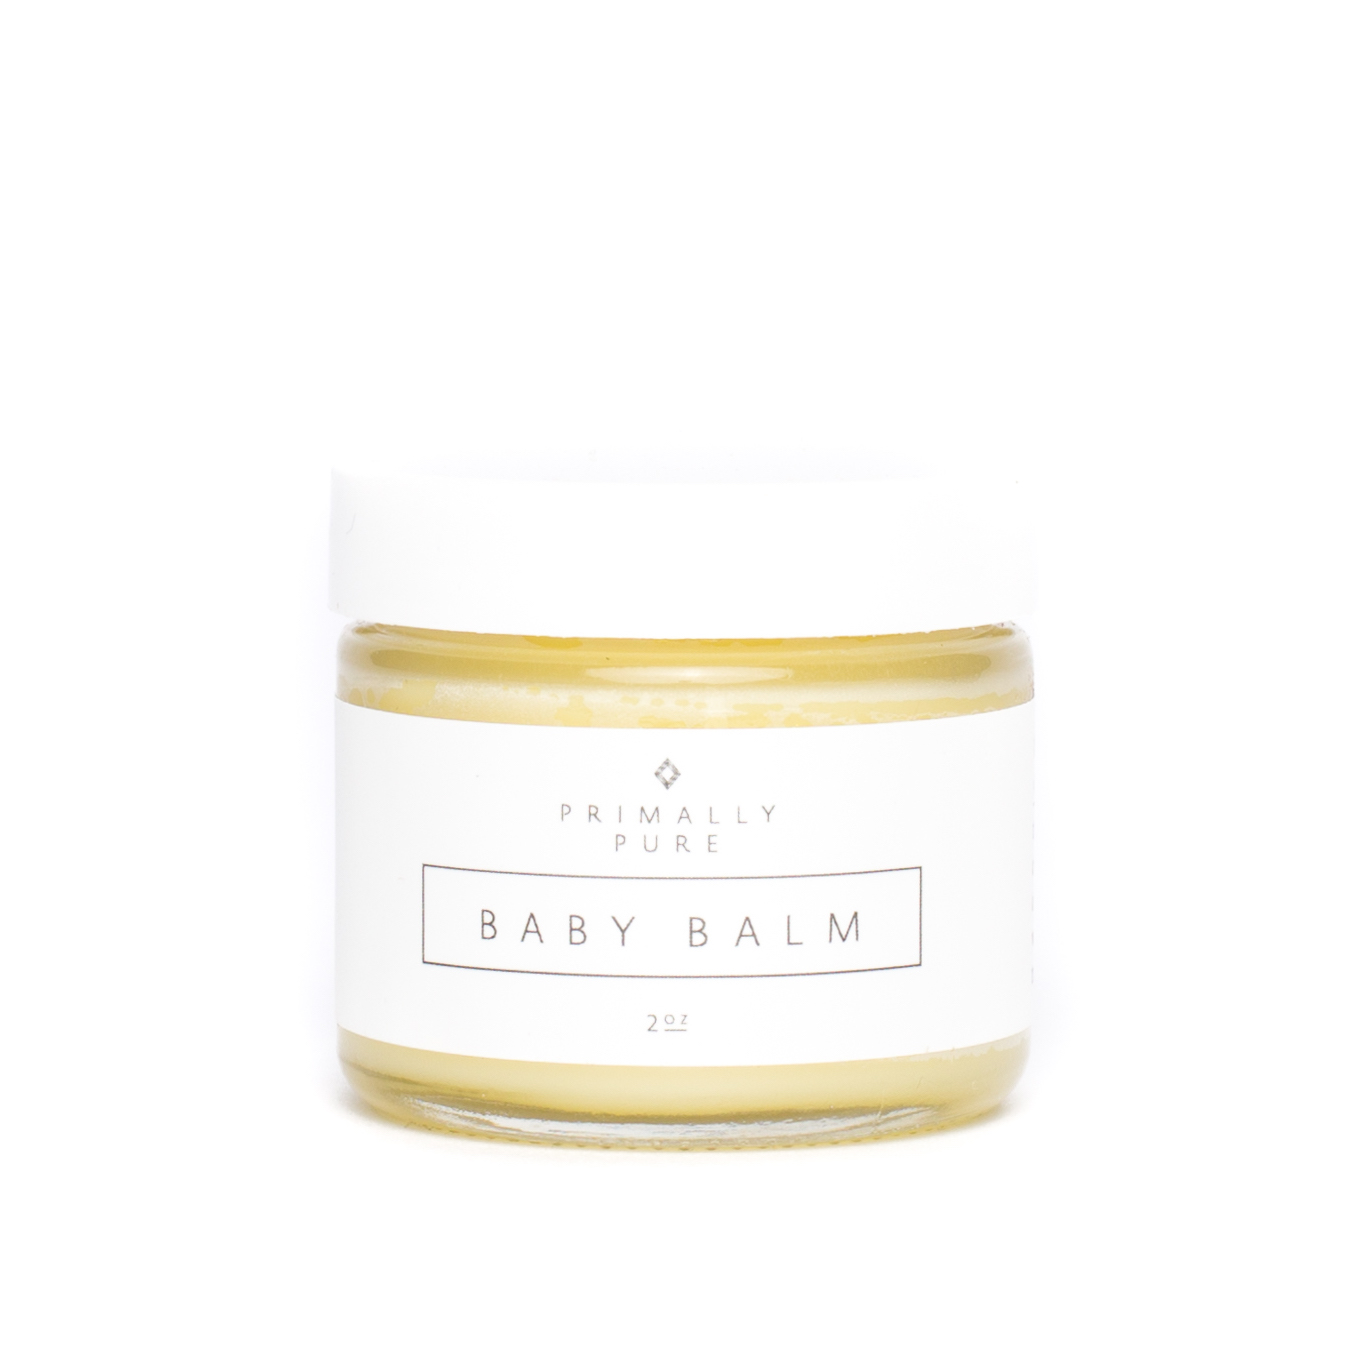 Primally Pure Baby Balm